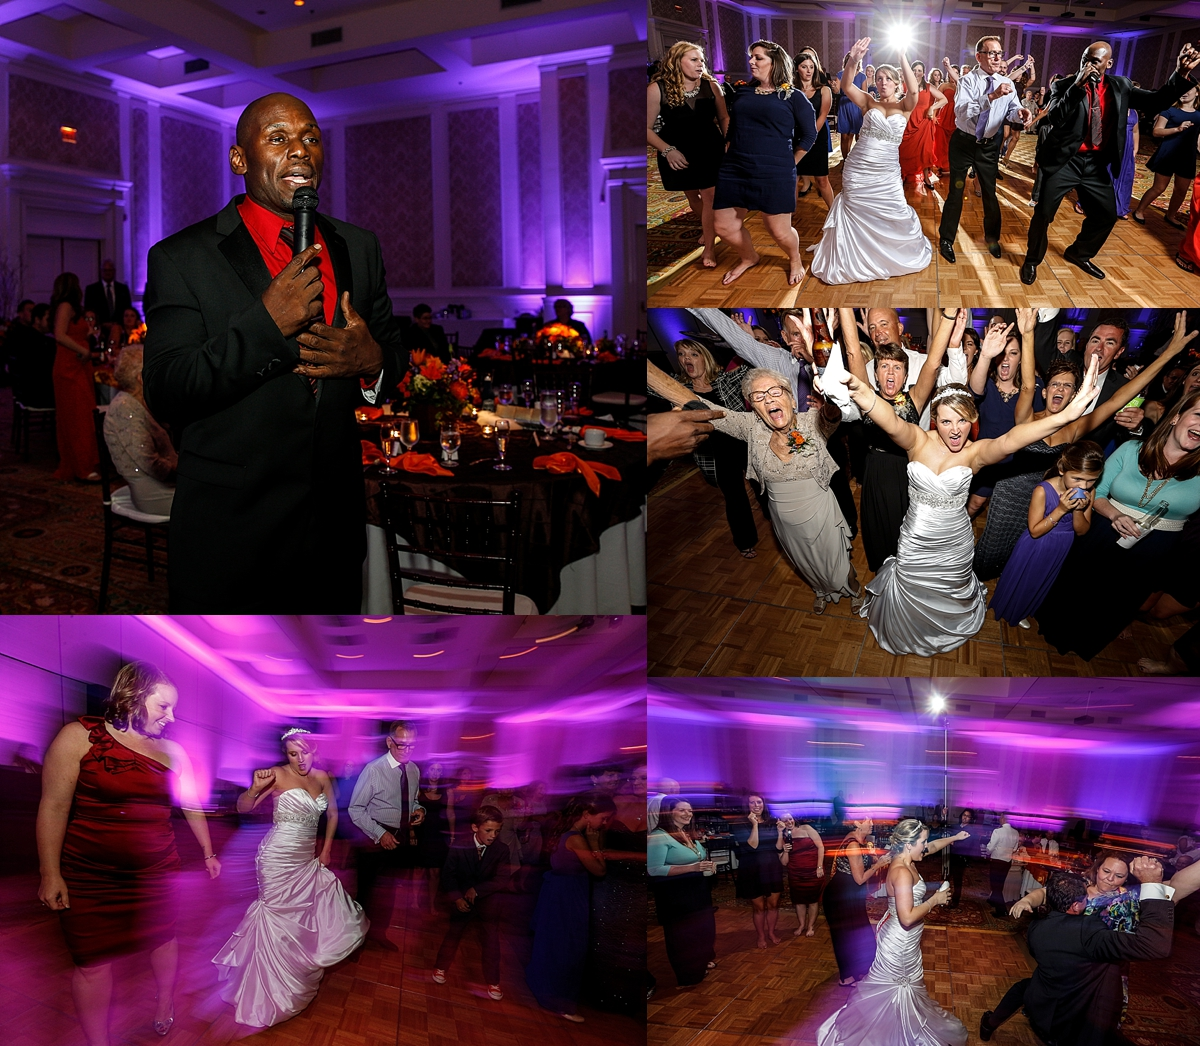 Founders Inn & Spa Wedding Photographer | Chaz and Kathy's Amazing Wedding at the Founders Inn!